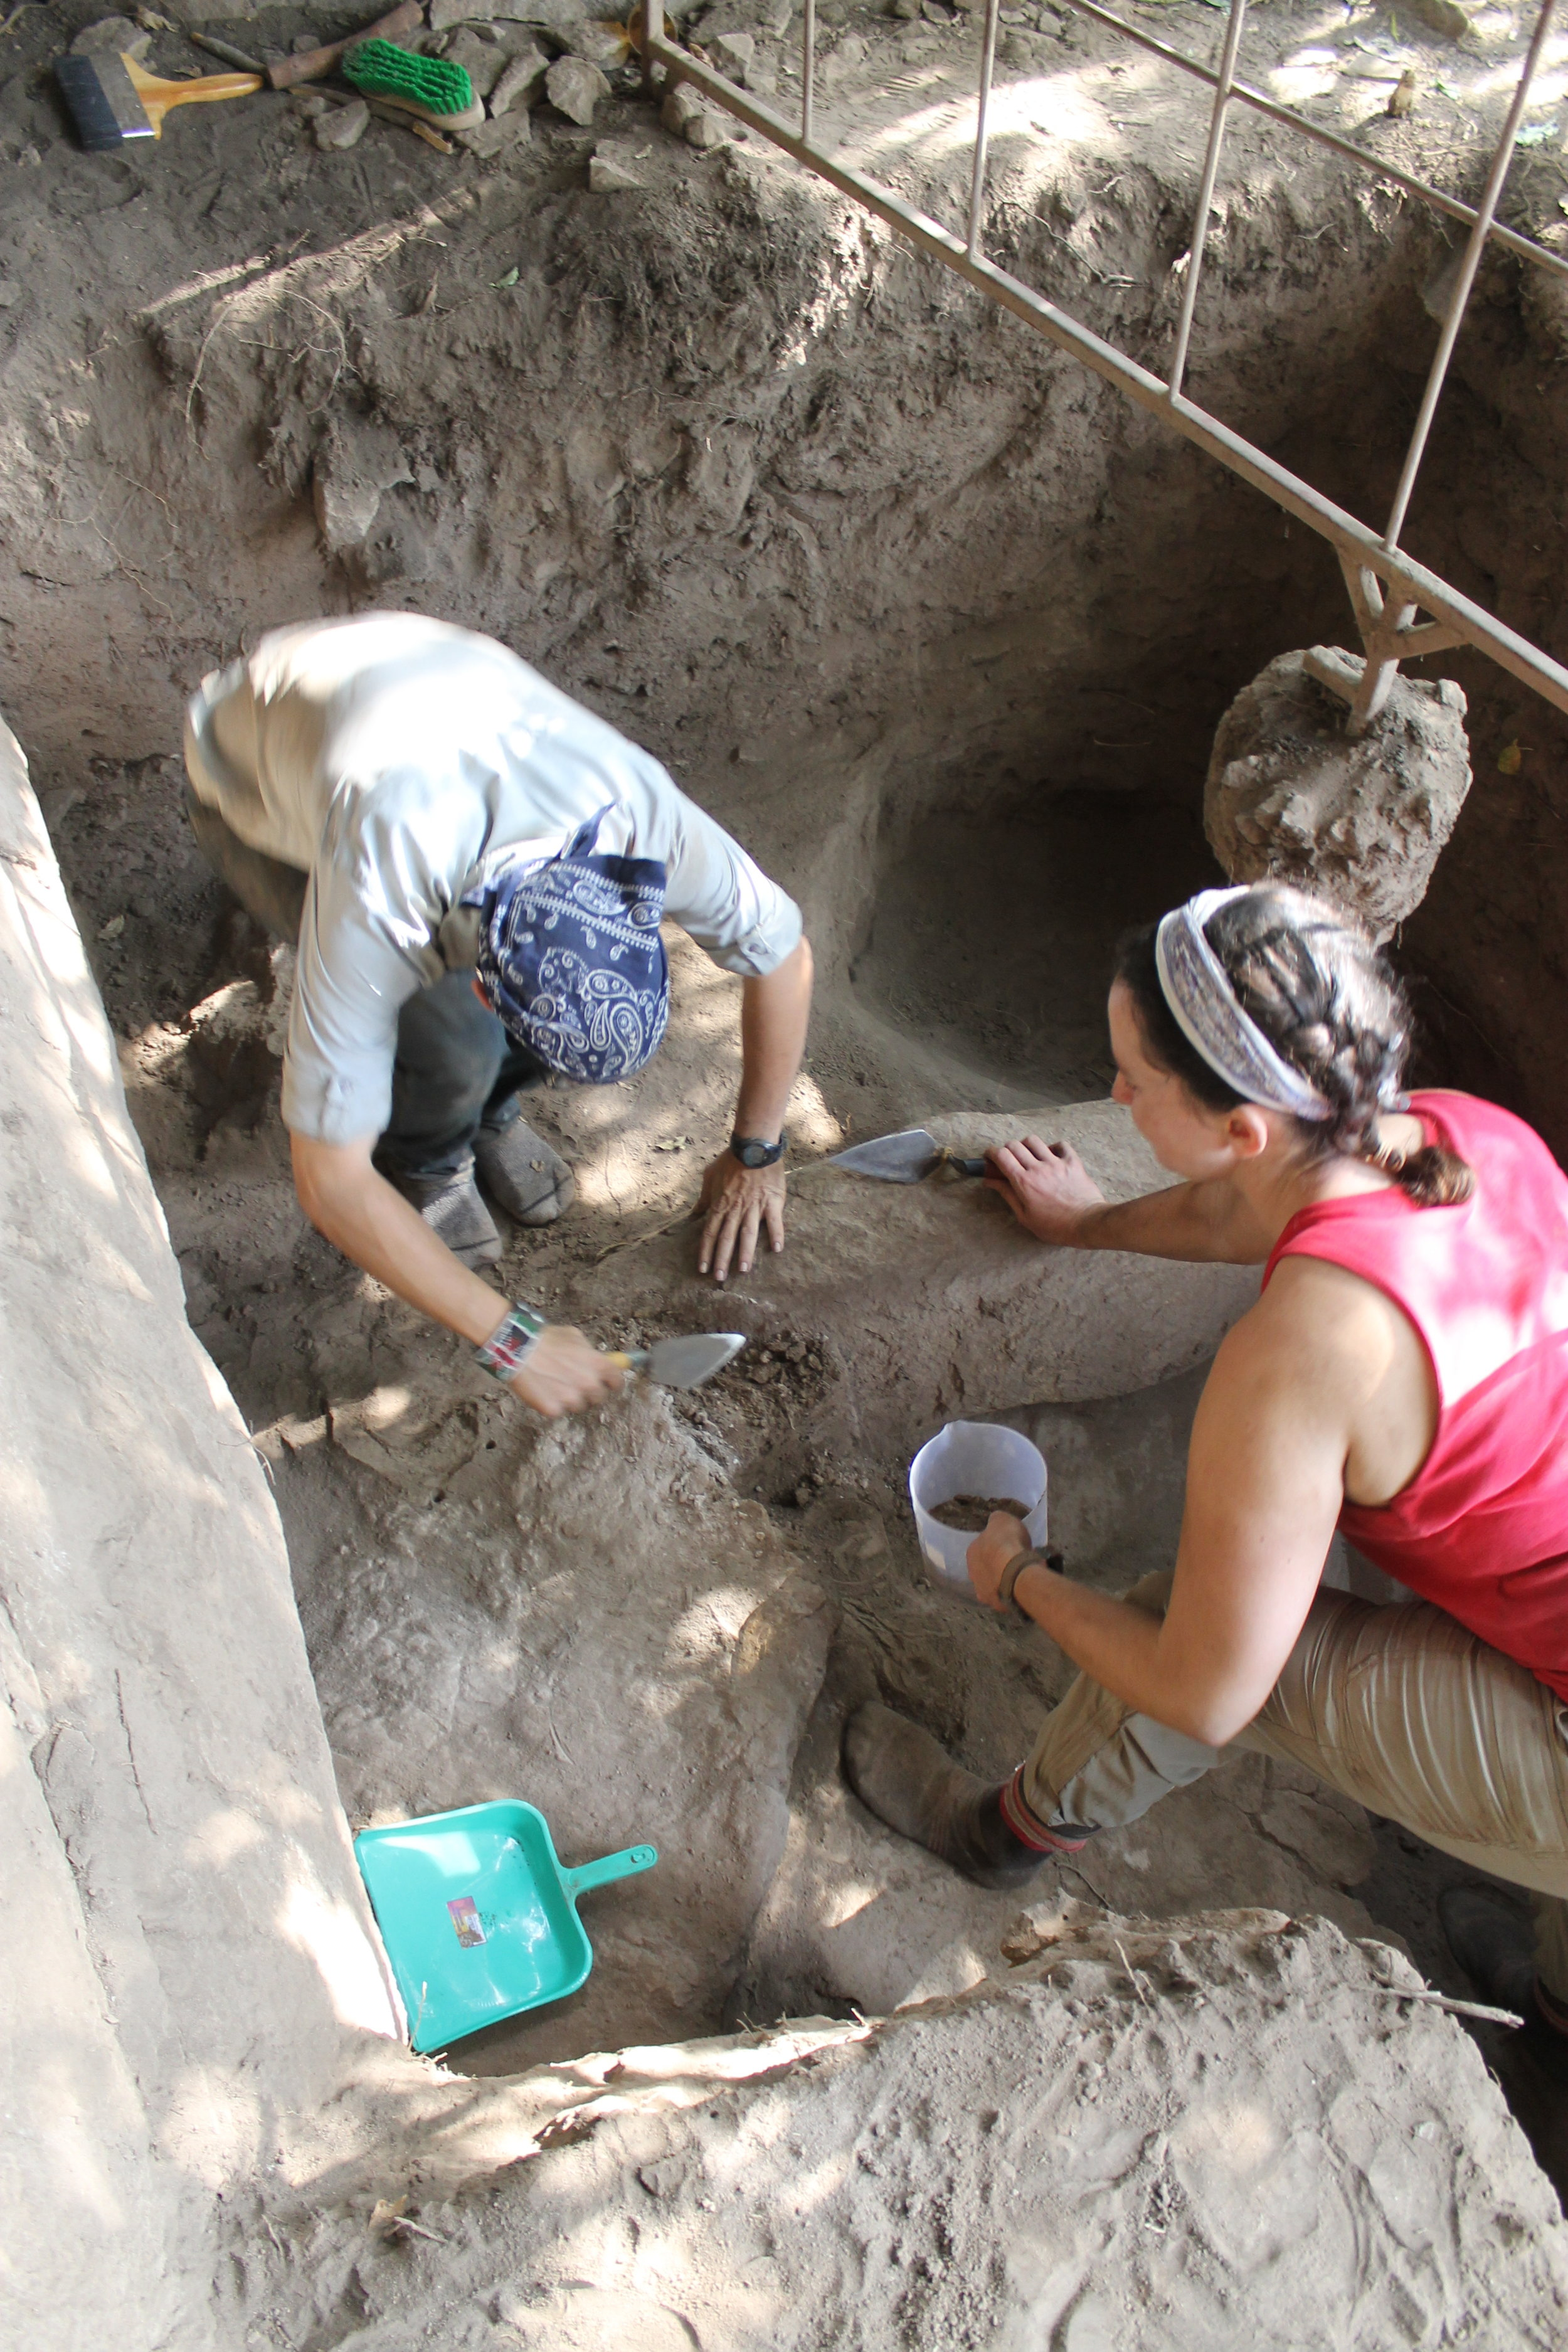 Excavating early Iron Age deposits